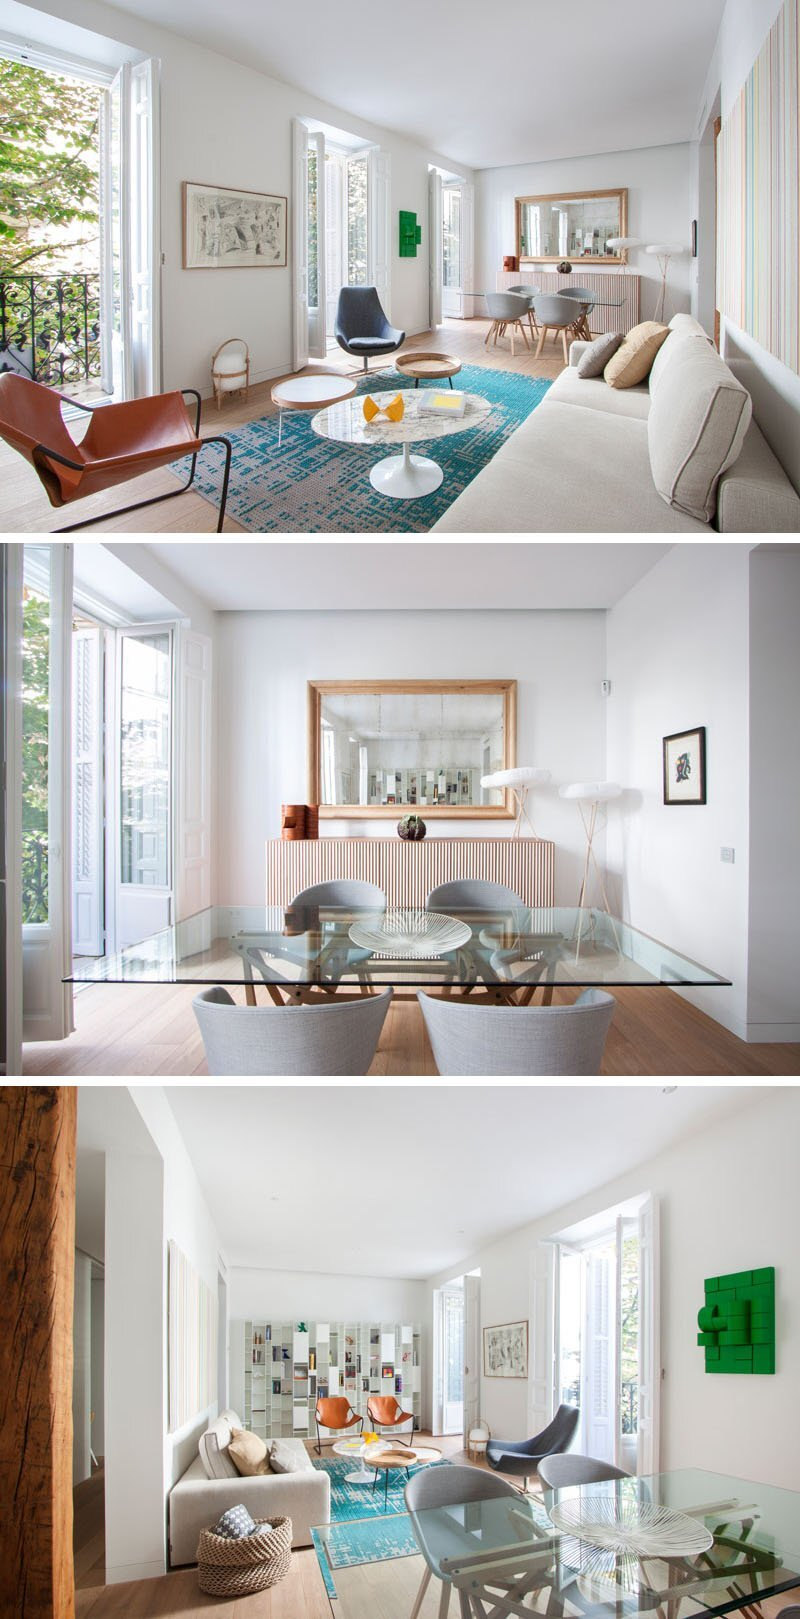 Small Contemporary Apartment - Lucas y Hernández-Gil - Madrid Spain - Living Room Dining Room - Humble Homes